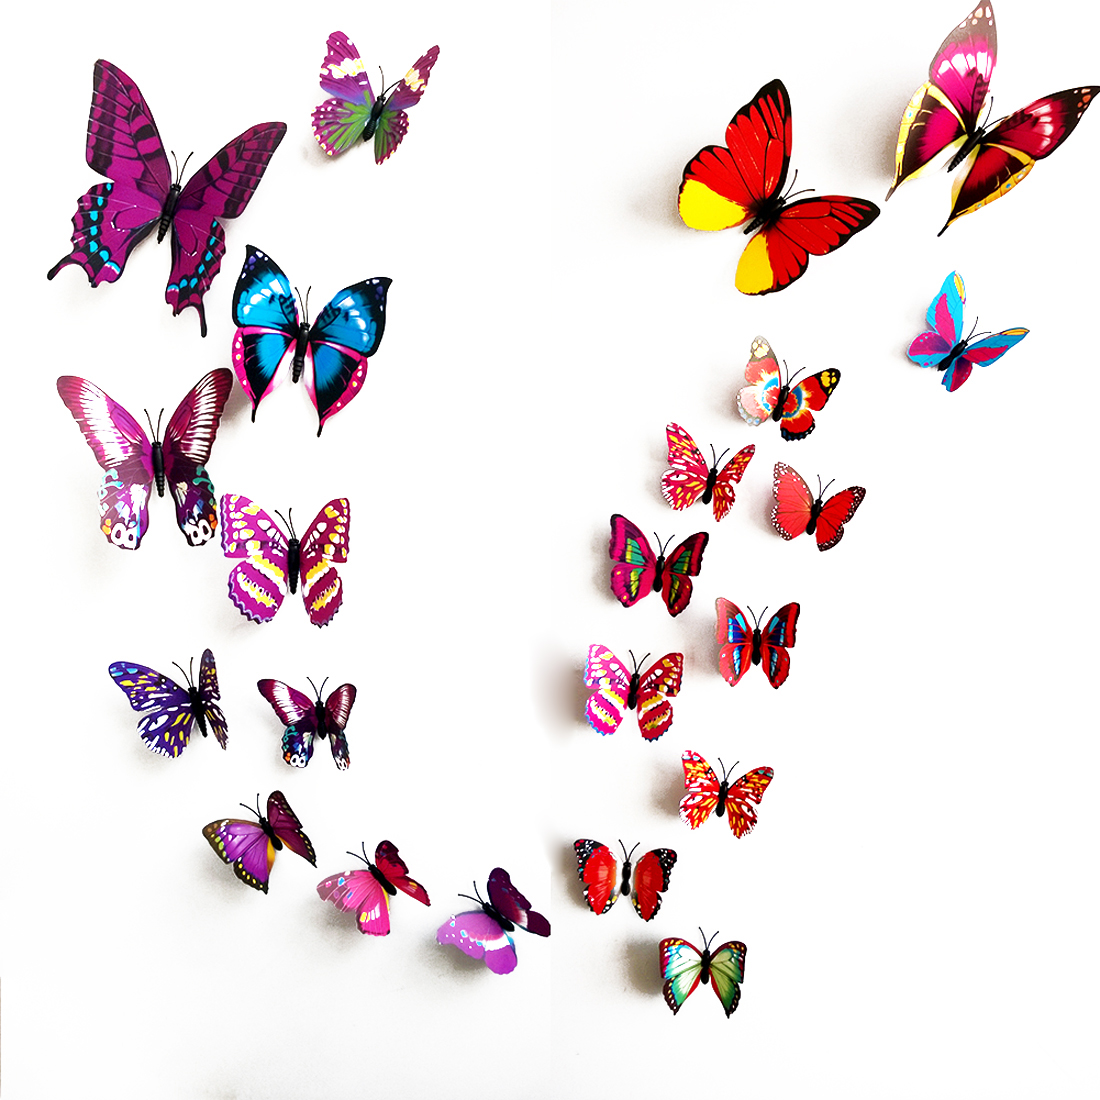 3d Butterfly Wall Decor 2015 New Gossip Girl Same Style 3d Butterfly Wall Stickers